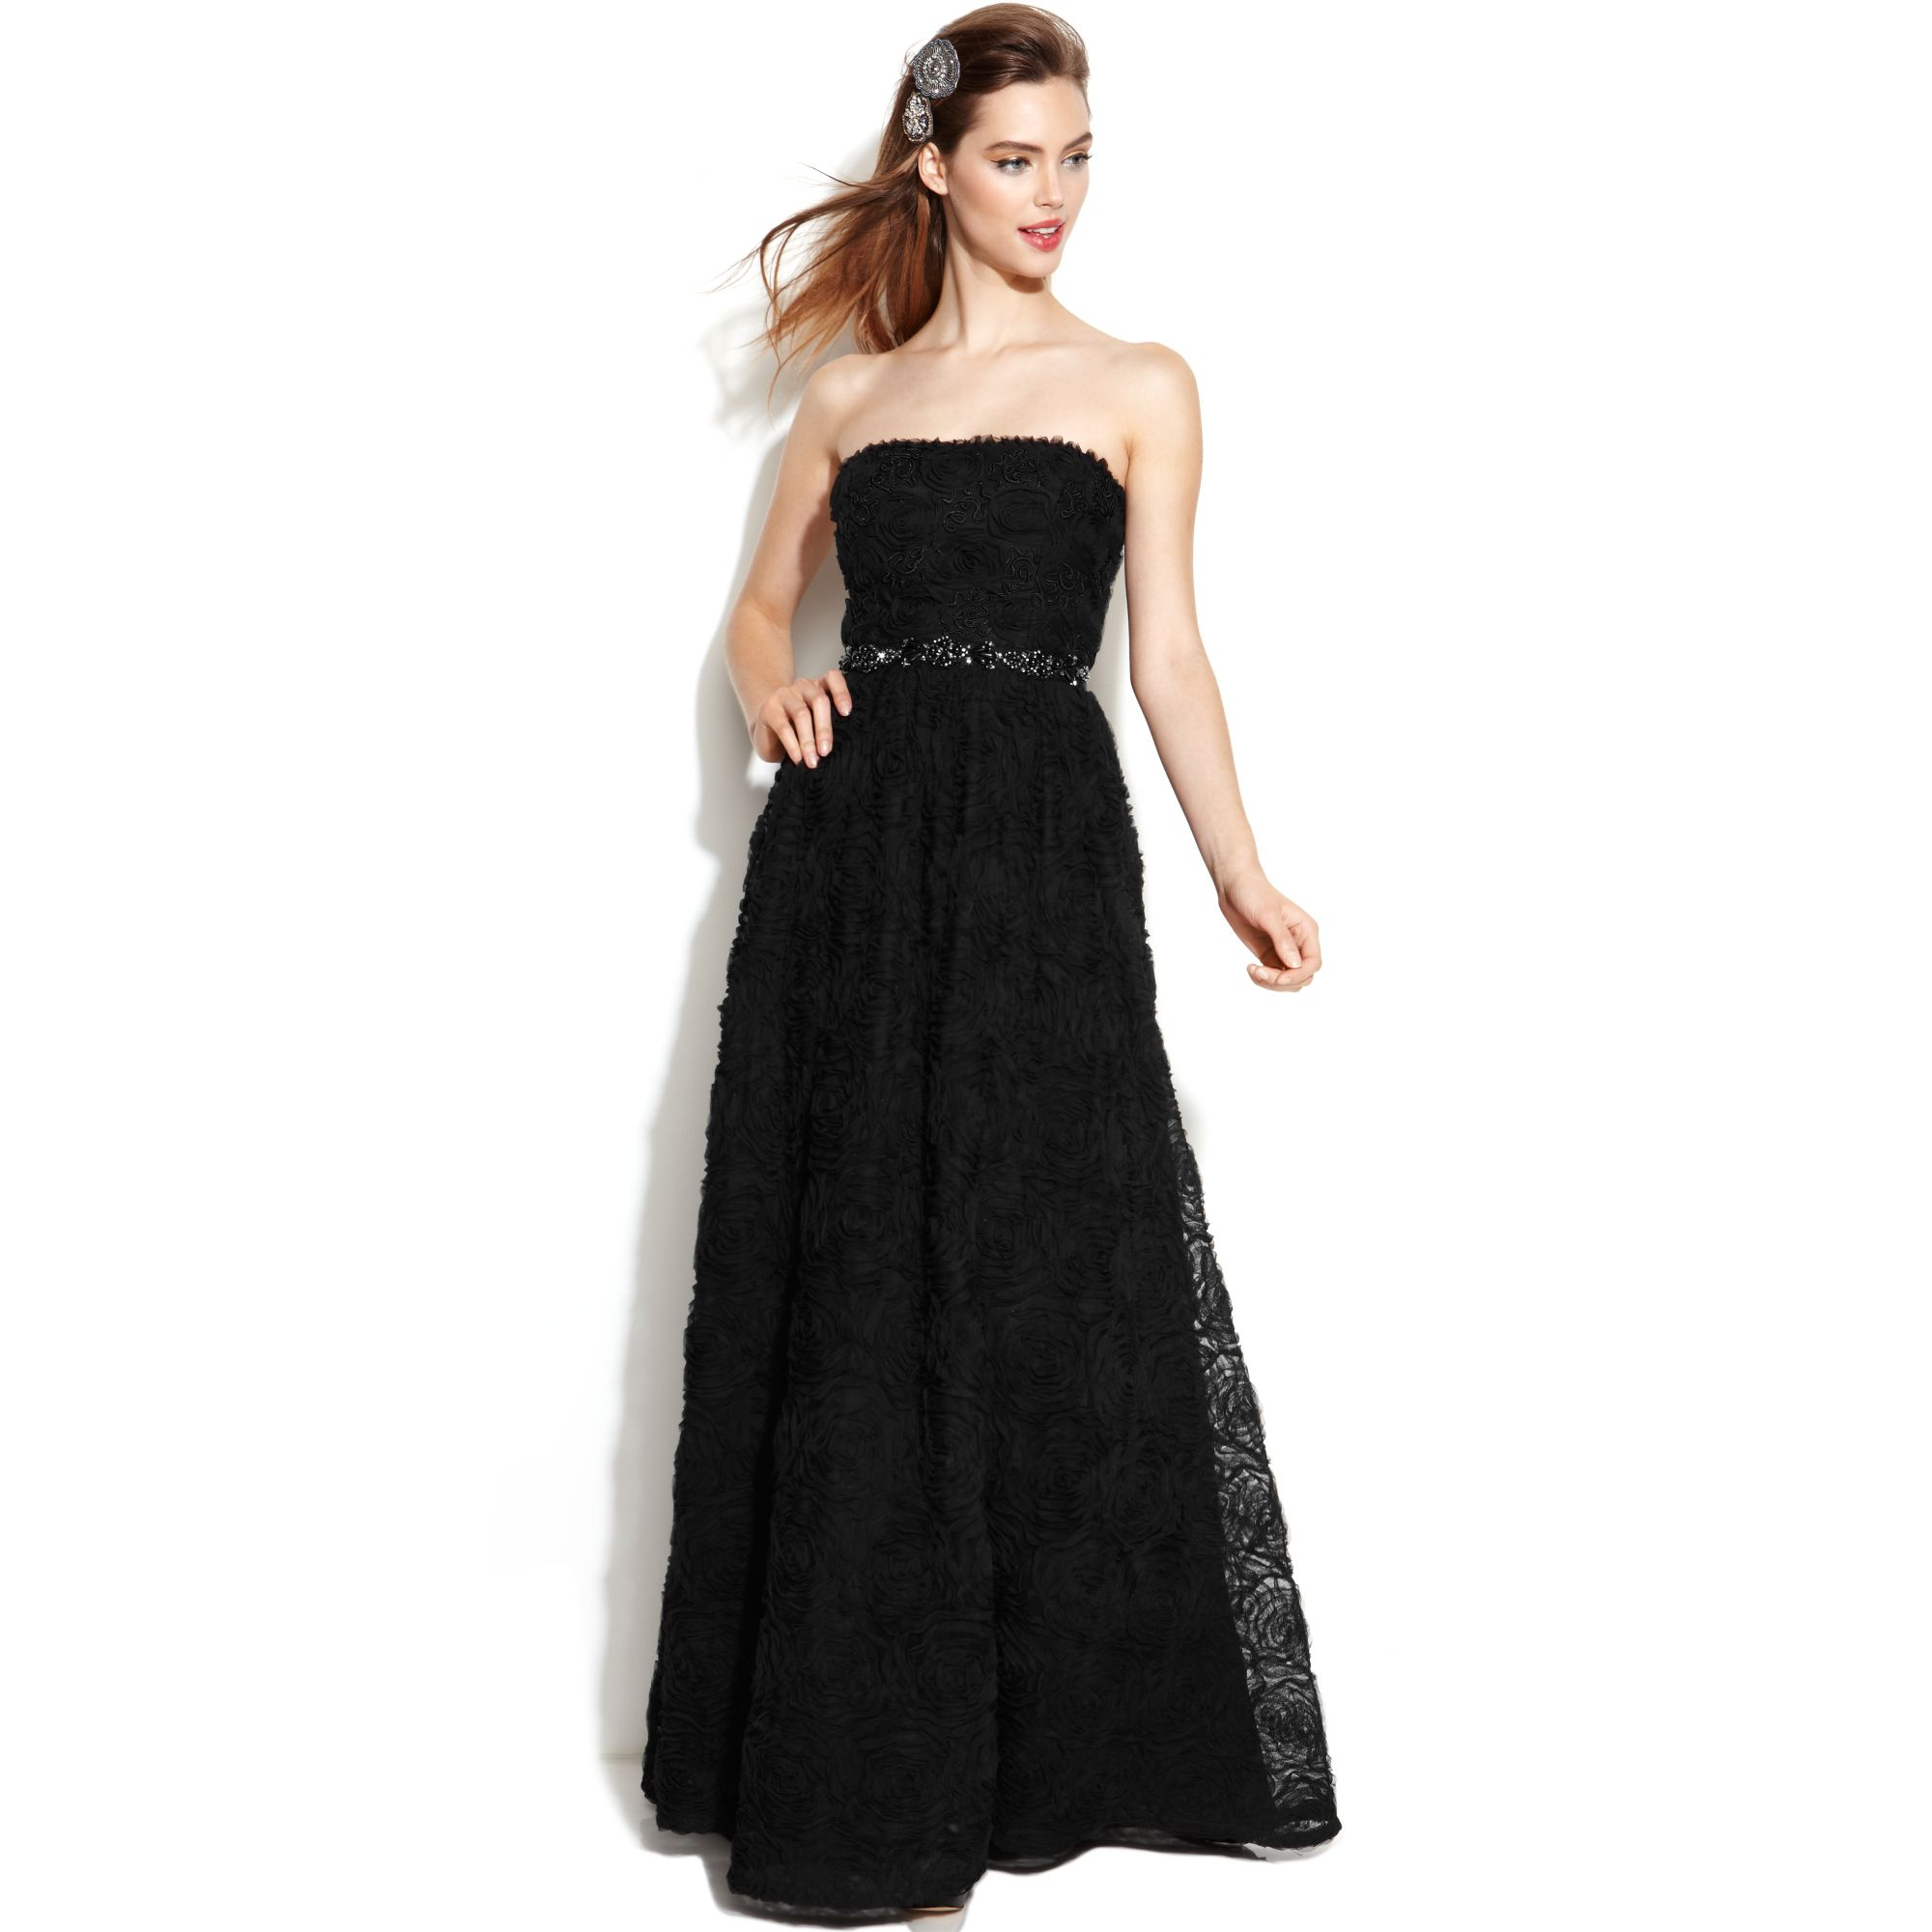 Lyst - Adrianna Papell Strapless Beaded Ball Gown in Black